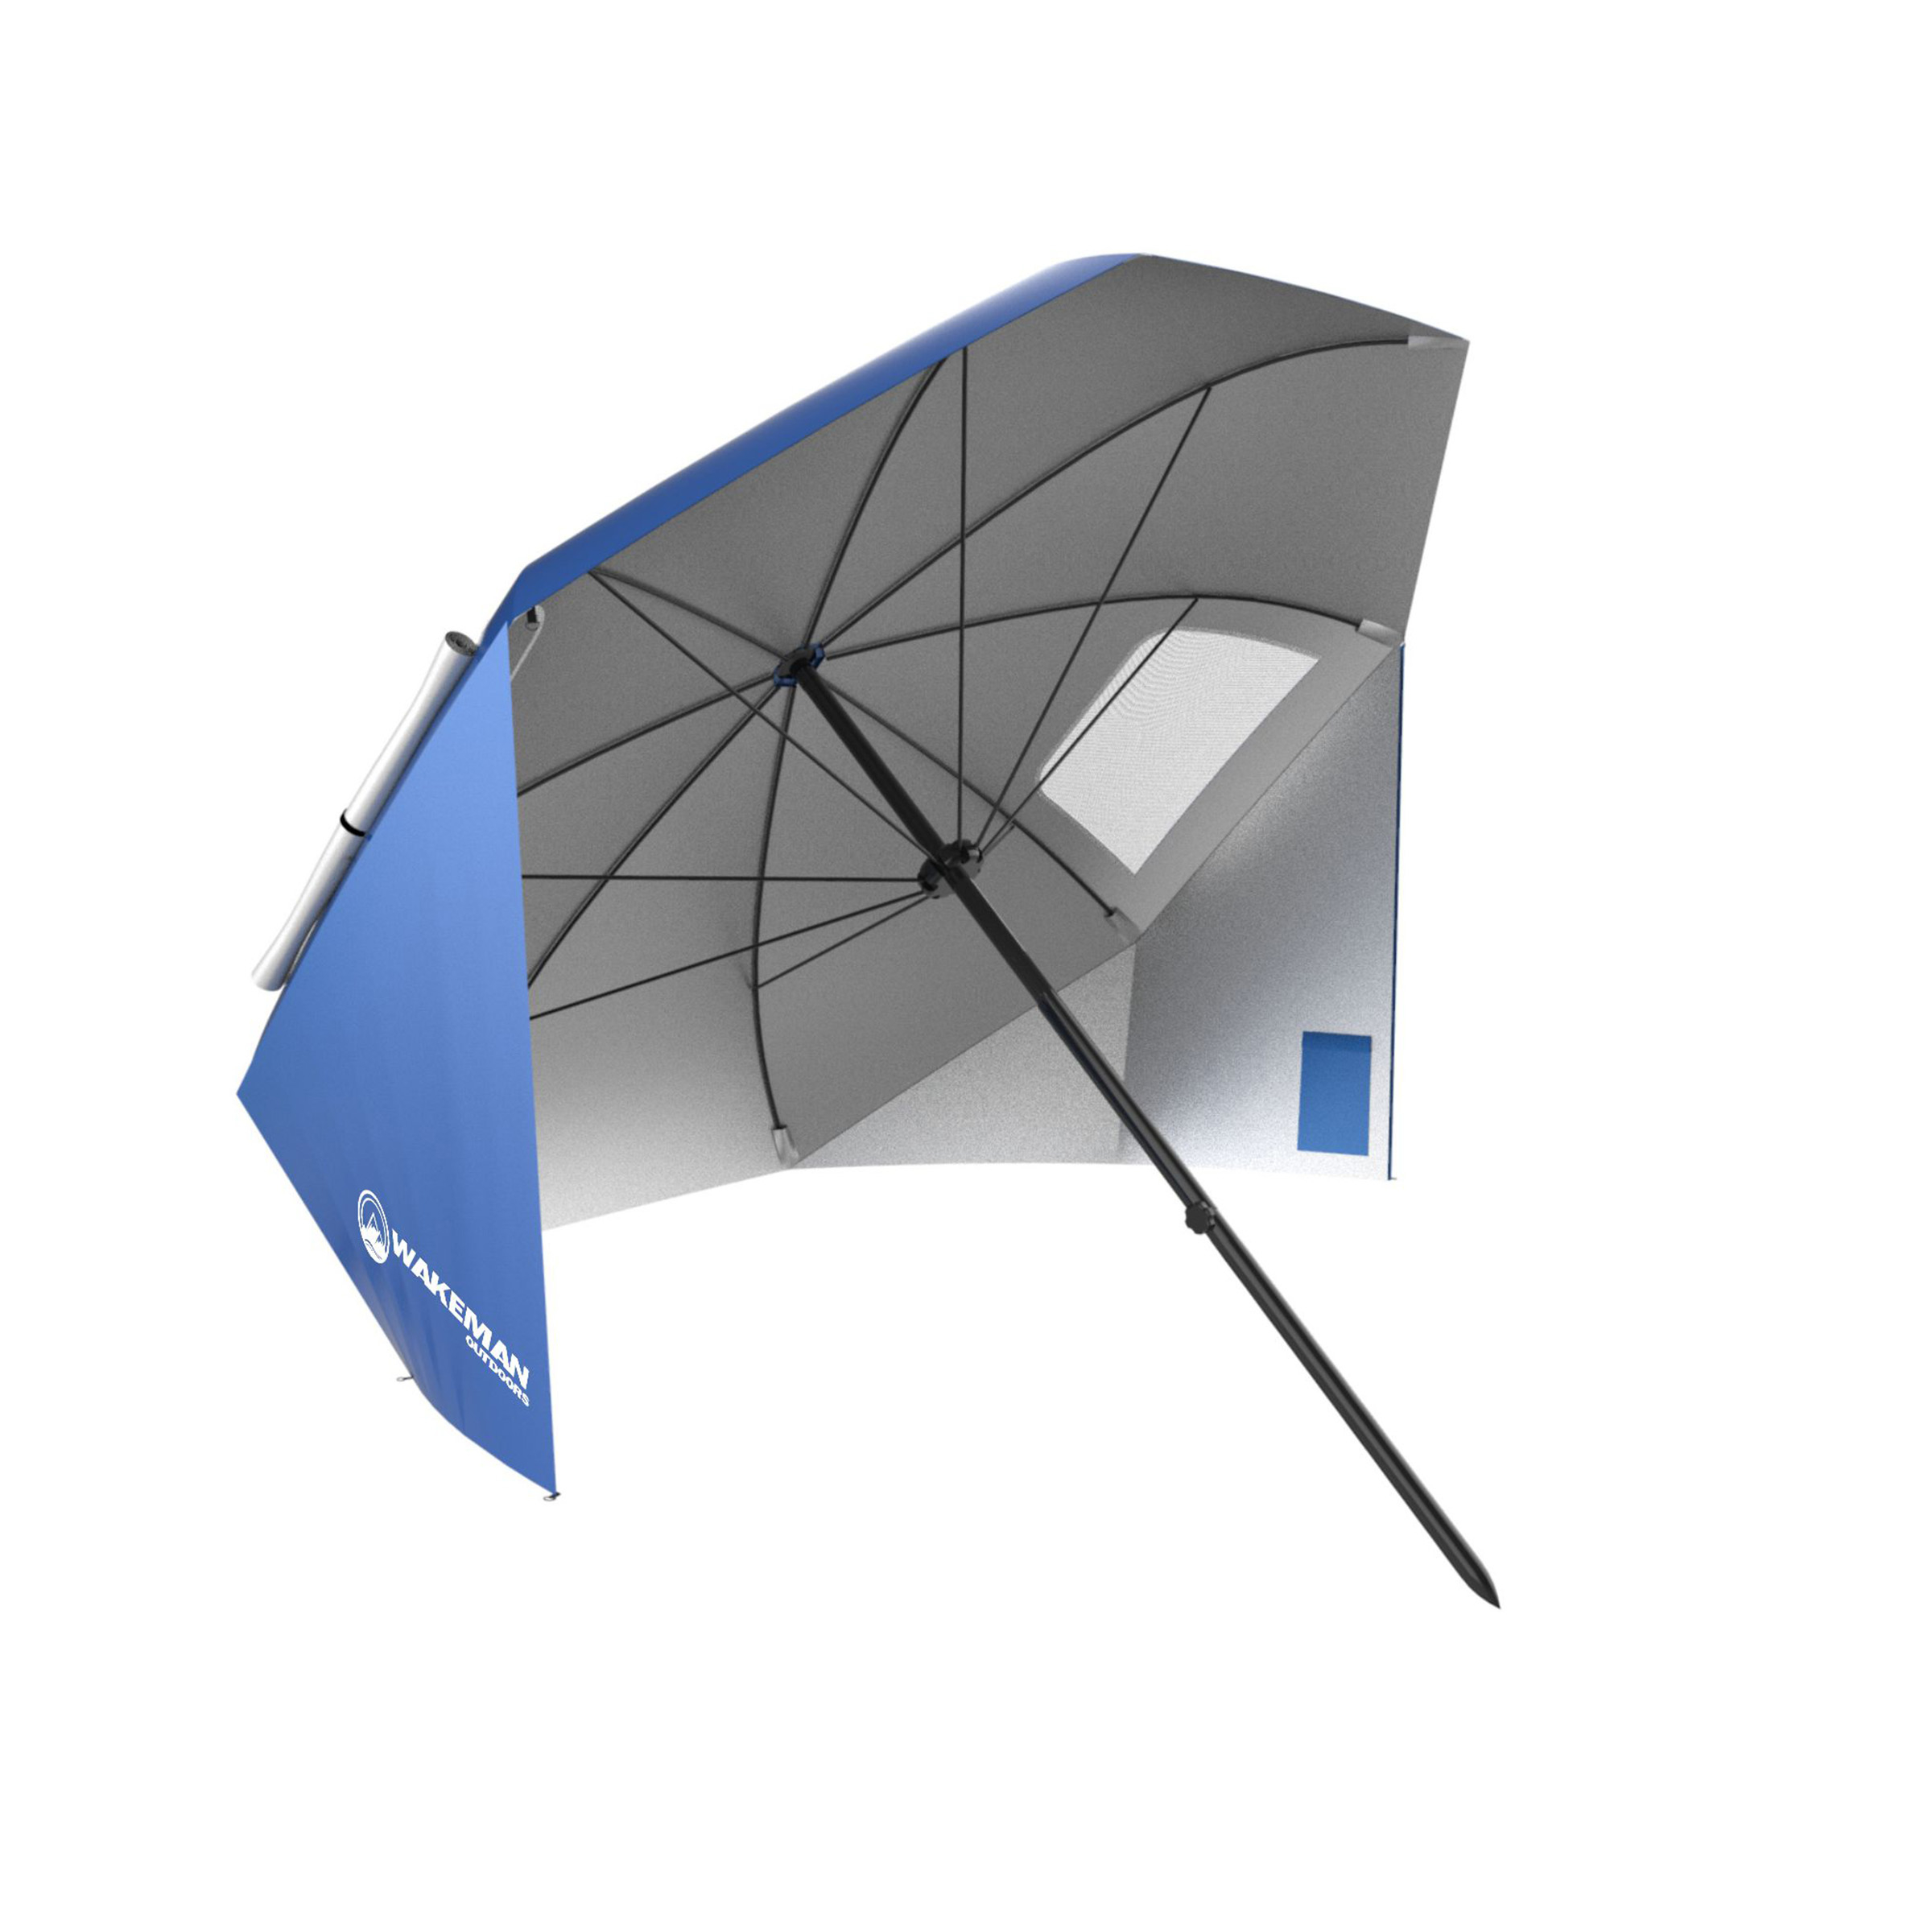 Wakeman M470033 Portable Umbrella Sun Shelter With Uv Protection Water Resistant 44 Blue